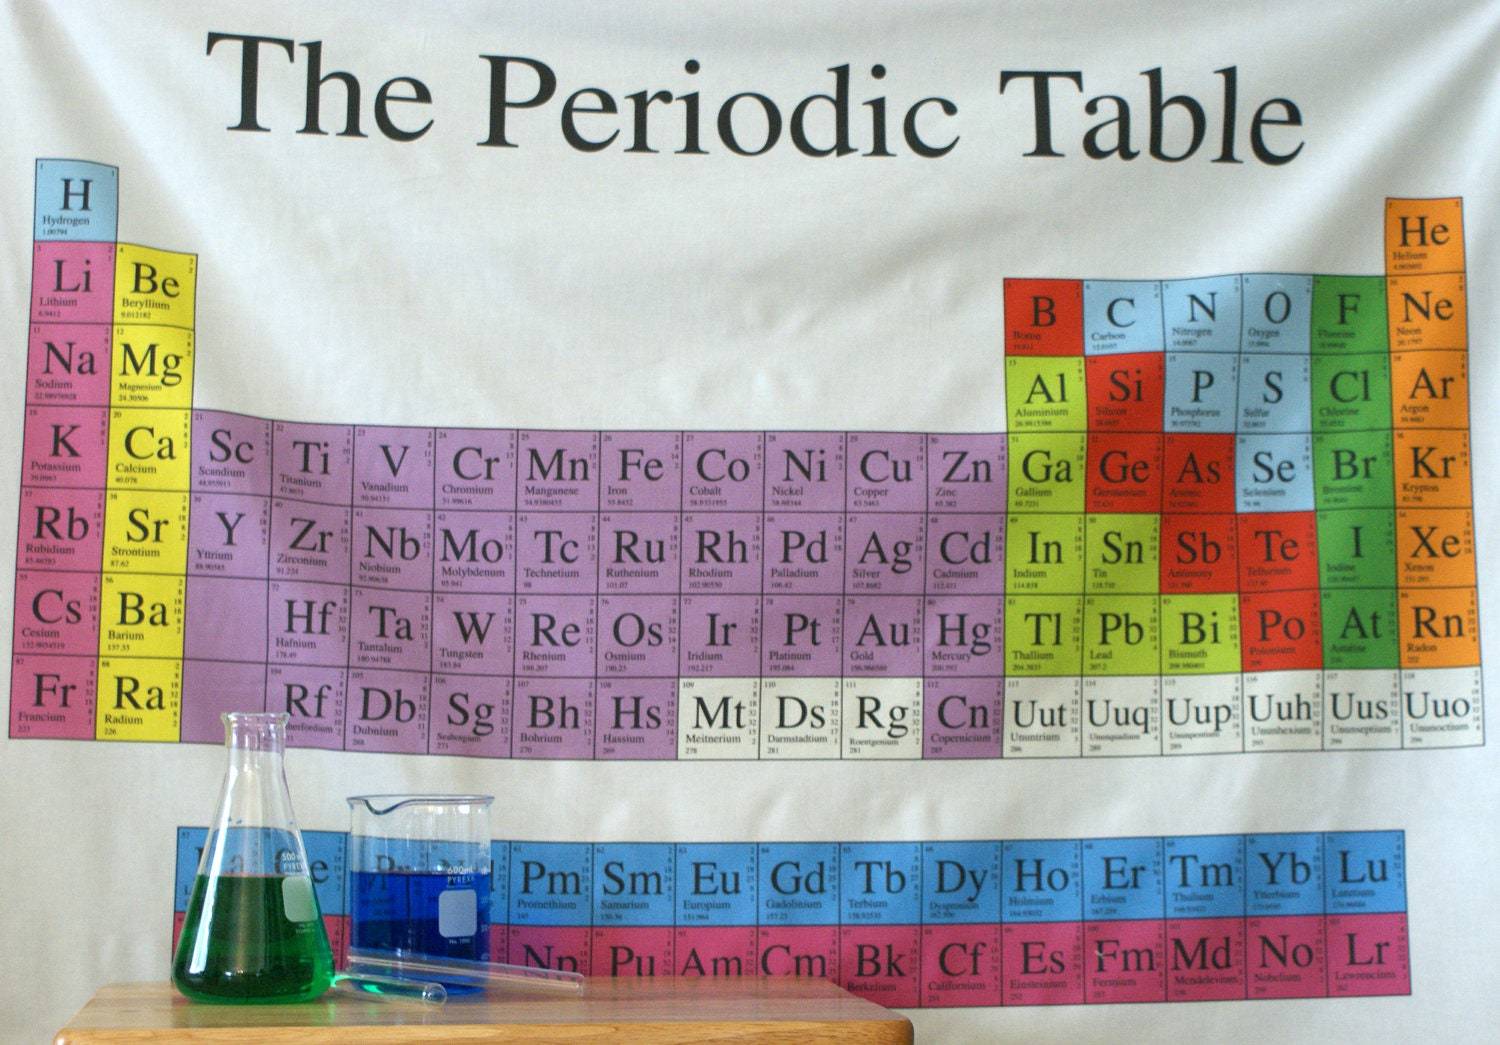 Periodic table chemistry science cotton fabric 1 yard panel zoom gamestrikefo Gallery